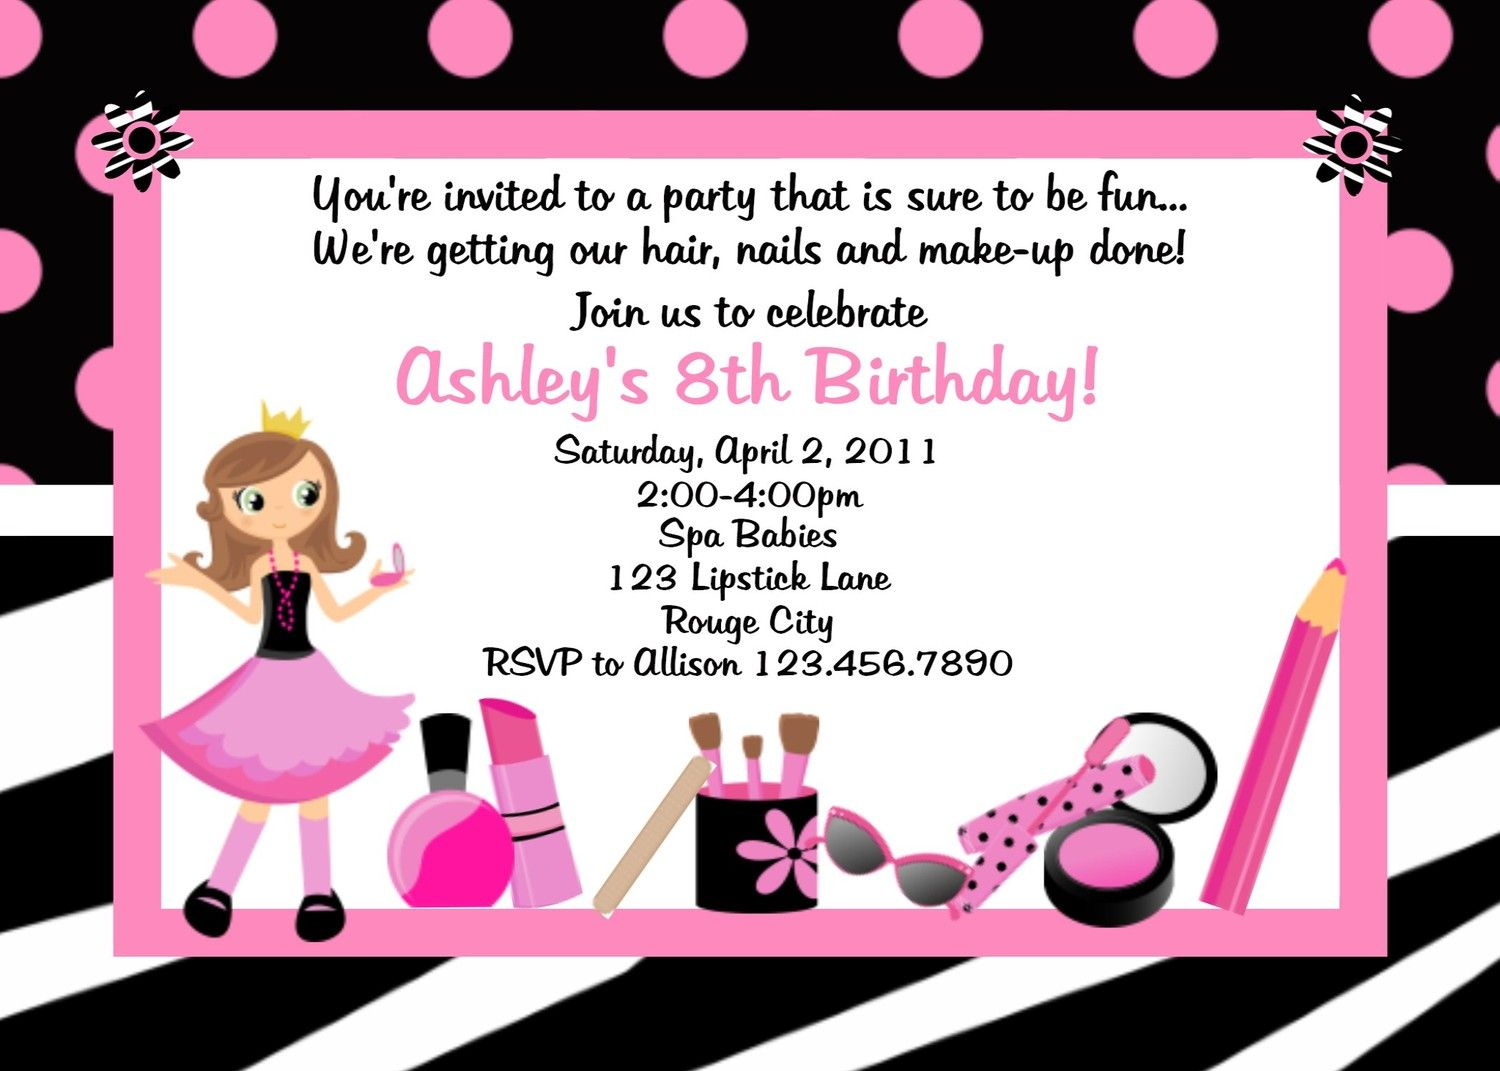 Lexis 6th bday party diva spa birthday invitation diva spa lexis 6th bday party diva spa birthday invitation diva spa birthday invite dress up birthday stopboris Images